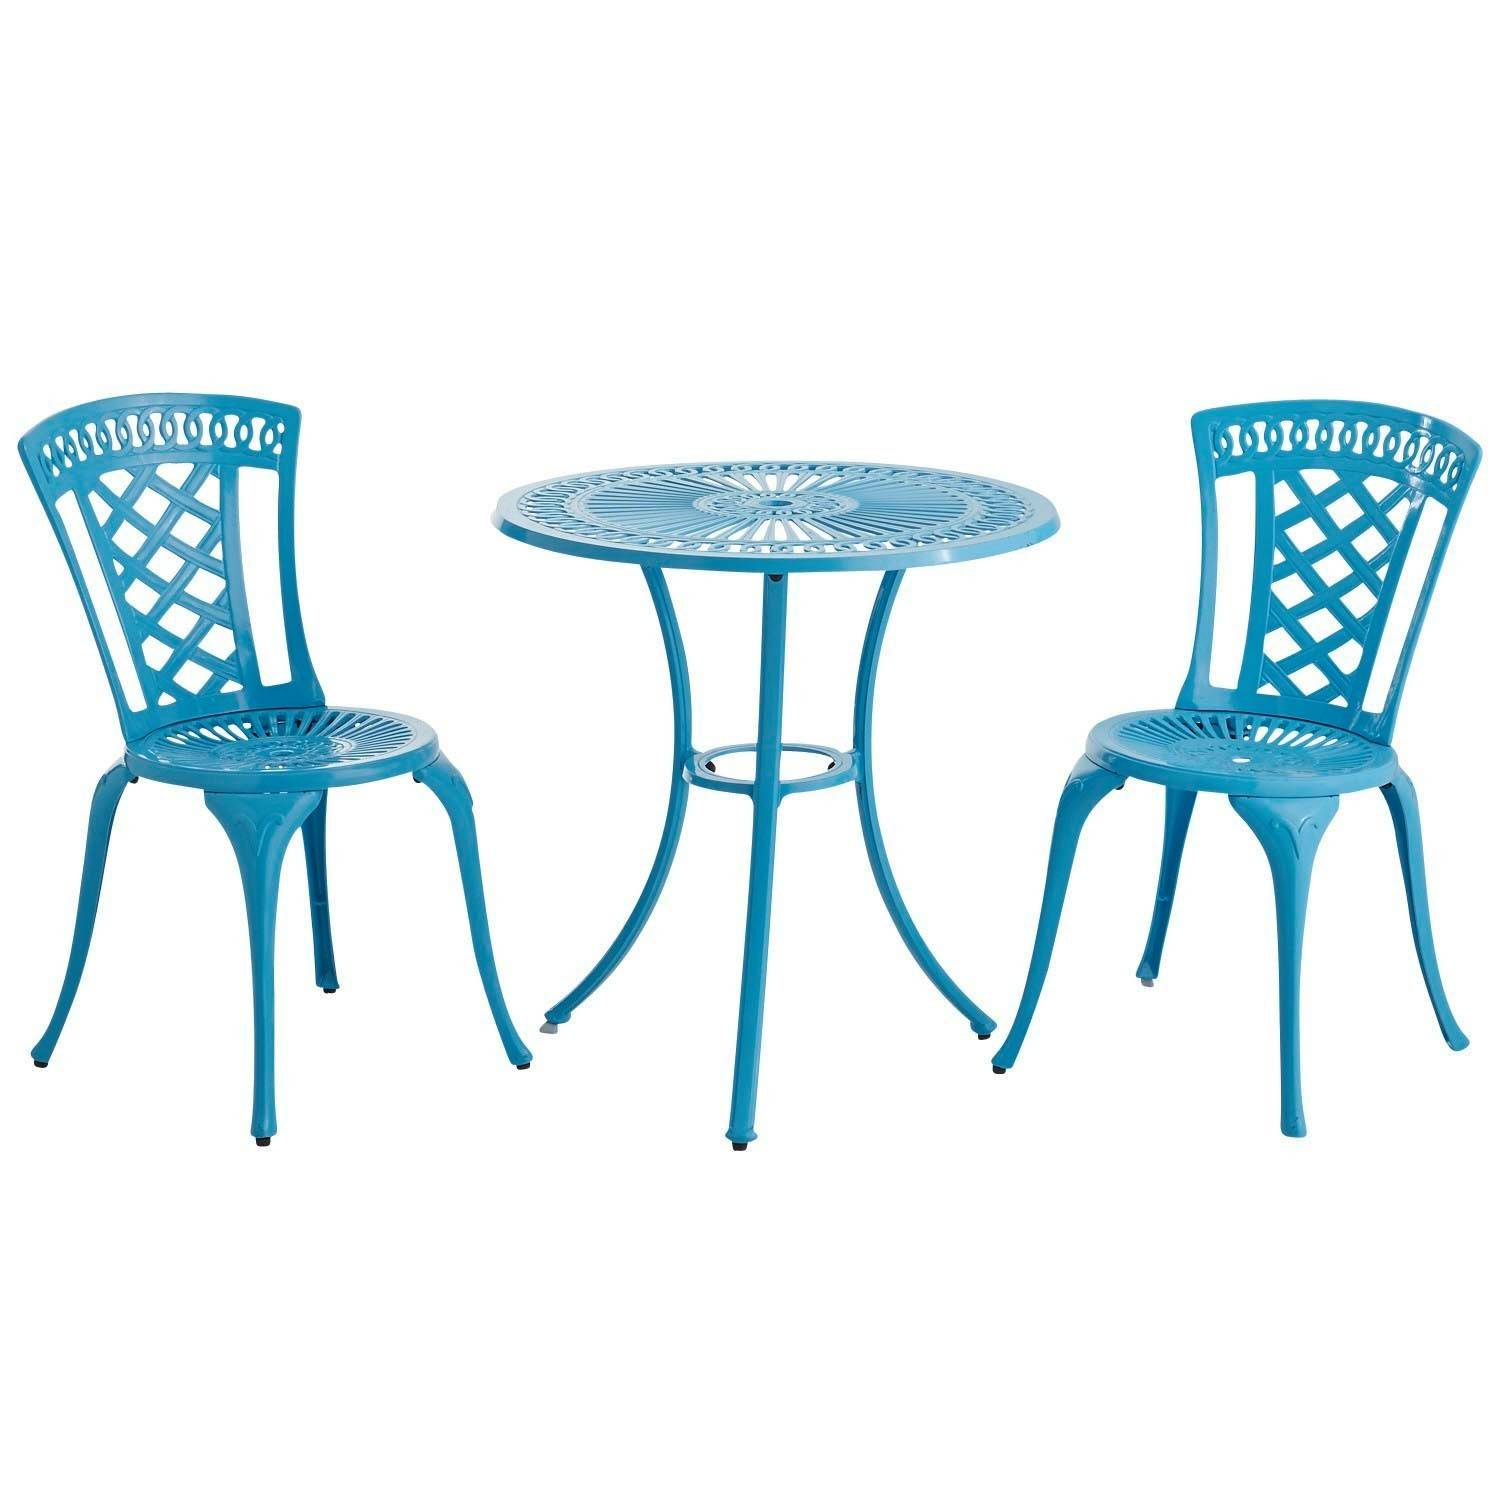 A Neely Bistro Set in a pretty blue that adds an unexpected, fun color to a patio or small balcony.